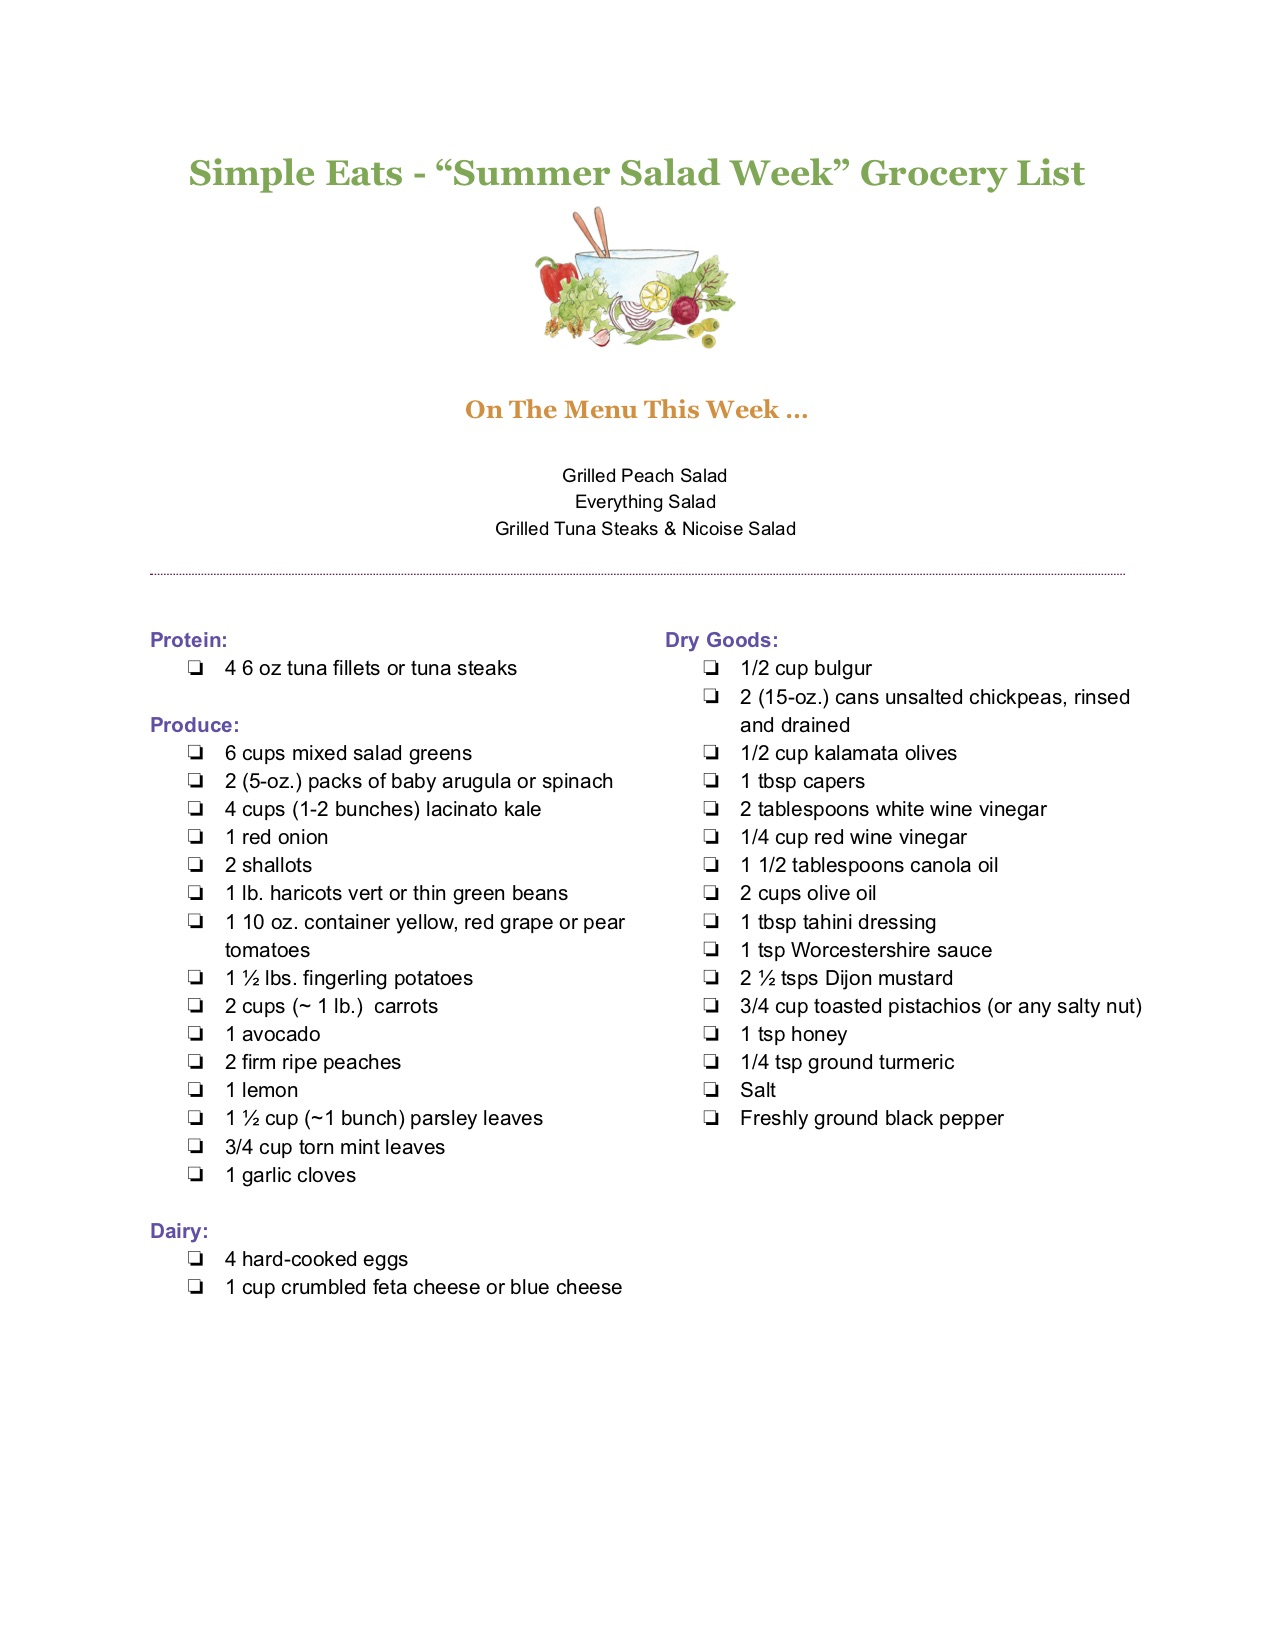 "Simple Eats - ""Summer Salad Week"" Grocery List - Google Docs copy.jpg"